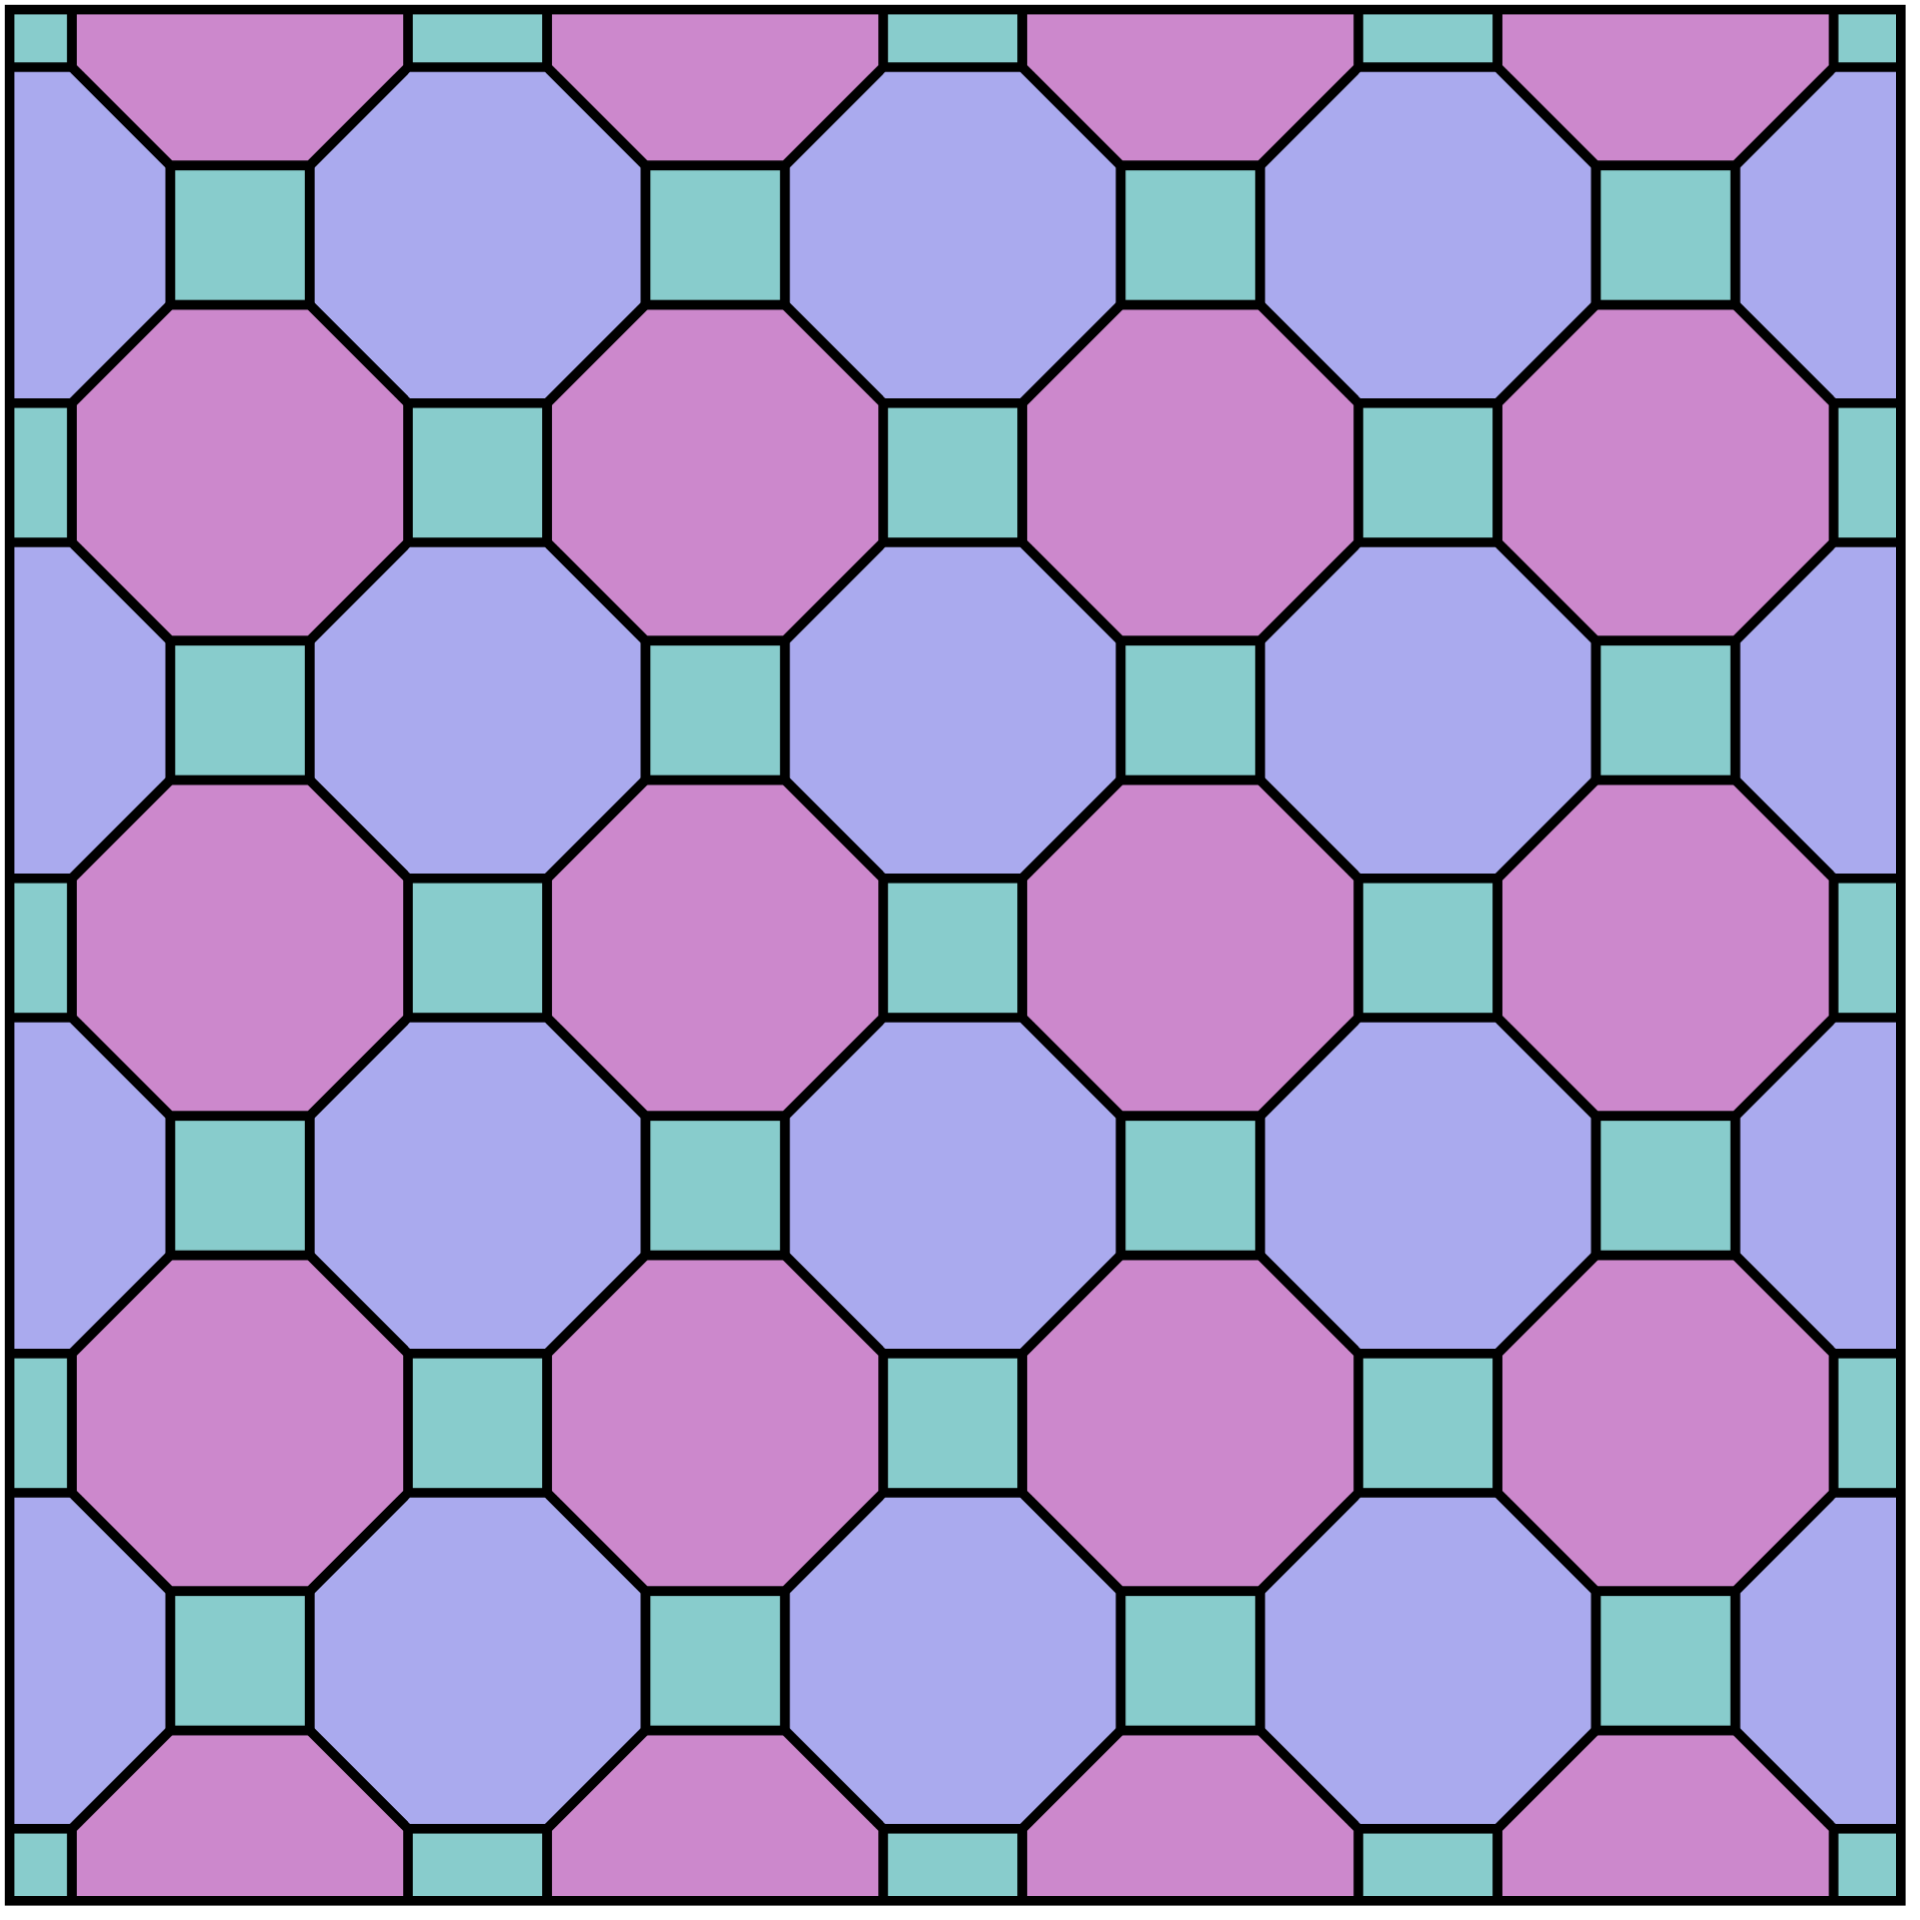 Octagon Wikipedia Octagon Tiles English Paper Piecing